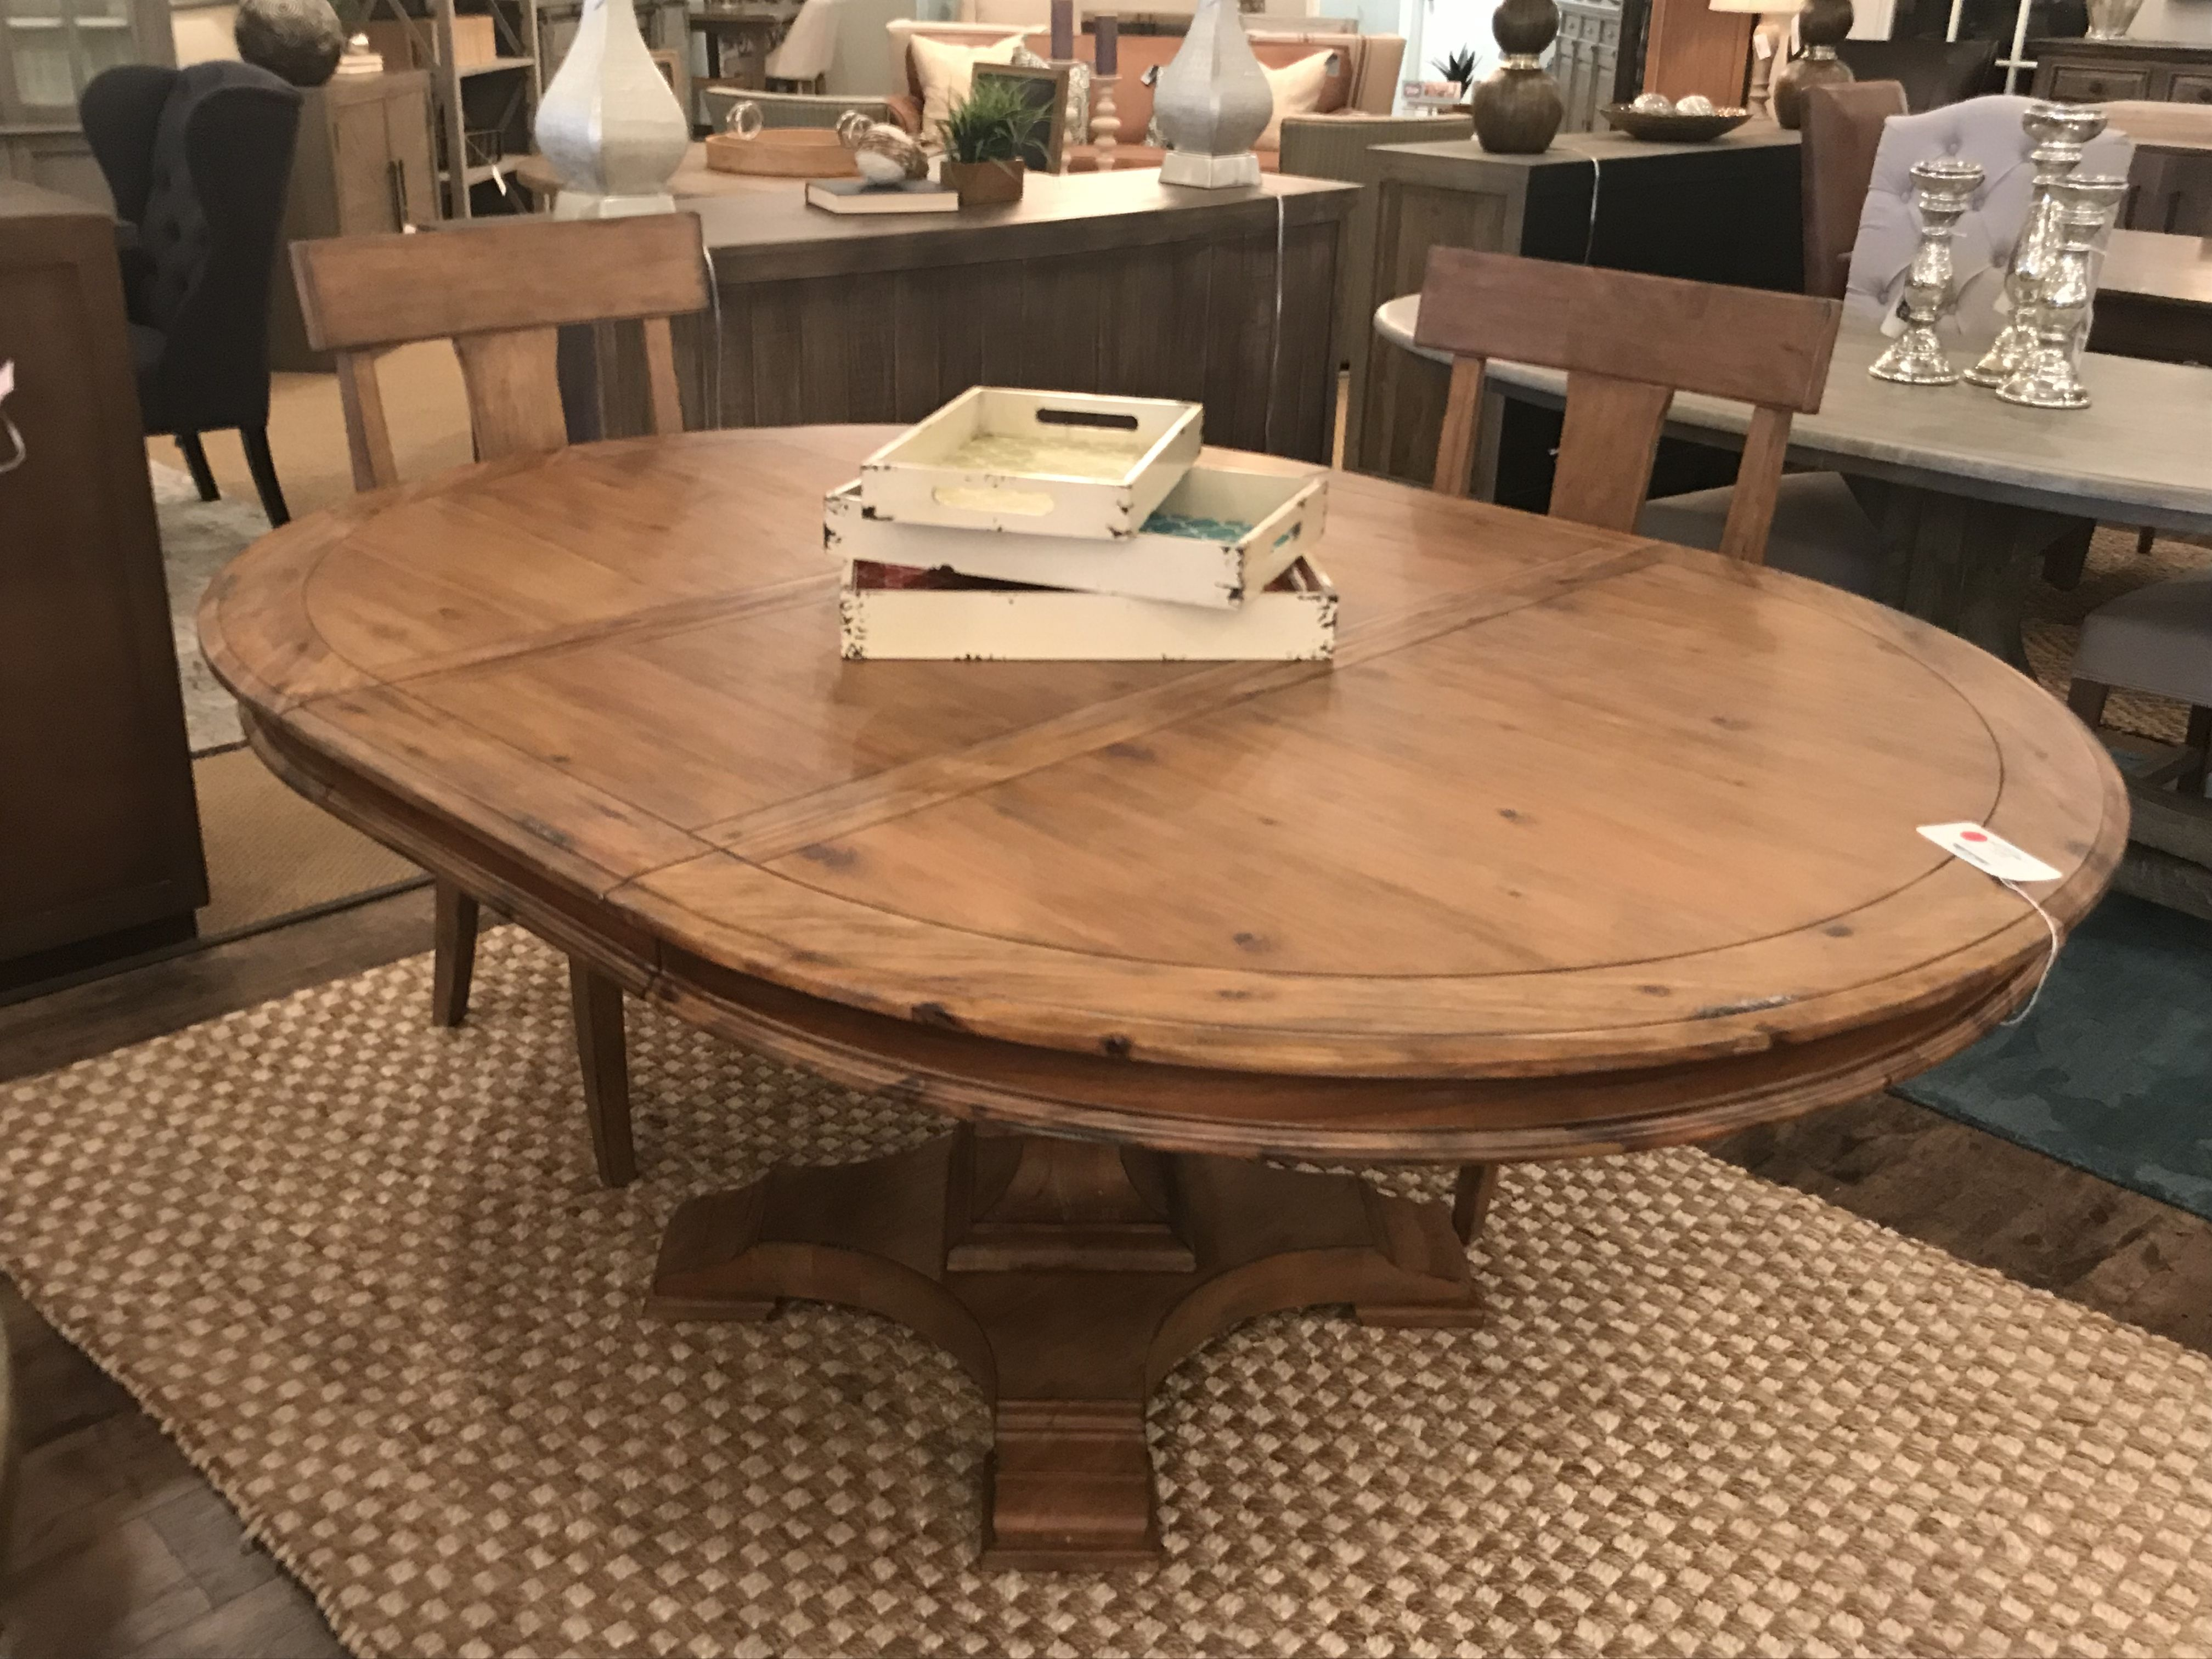 Pin On Vintage Home Dining Tables